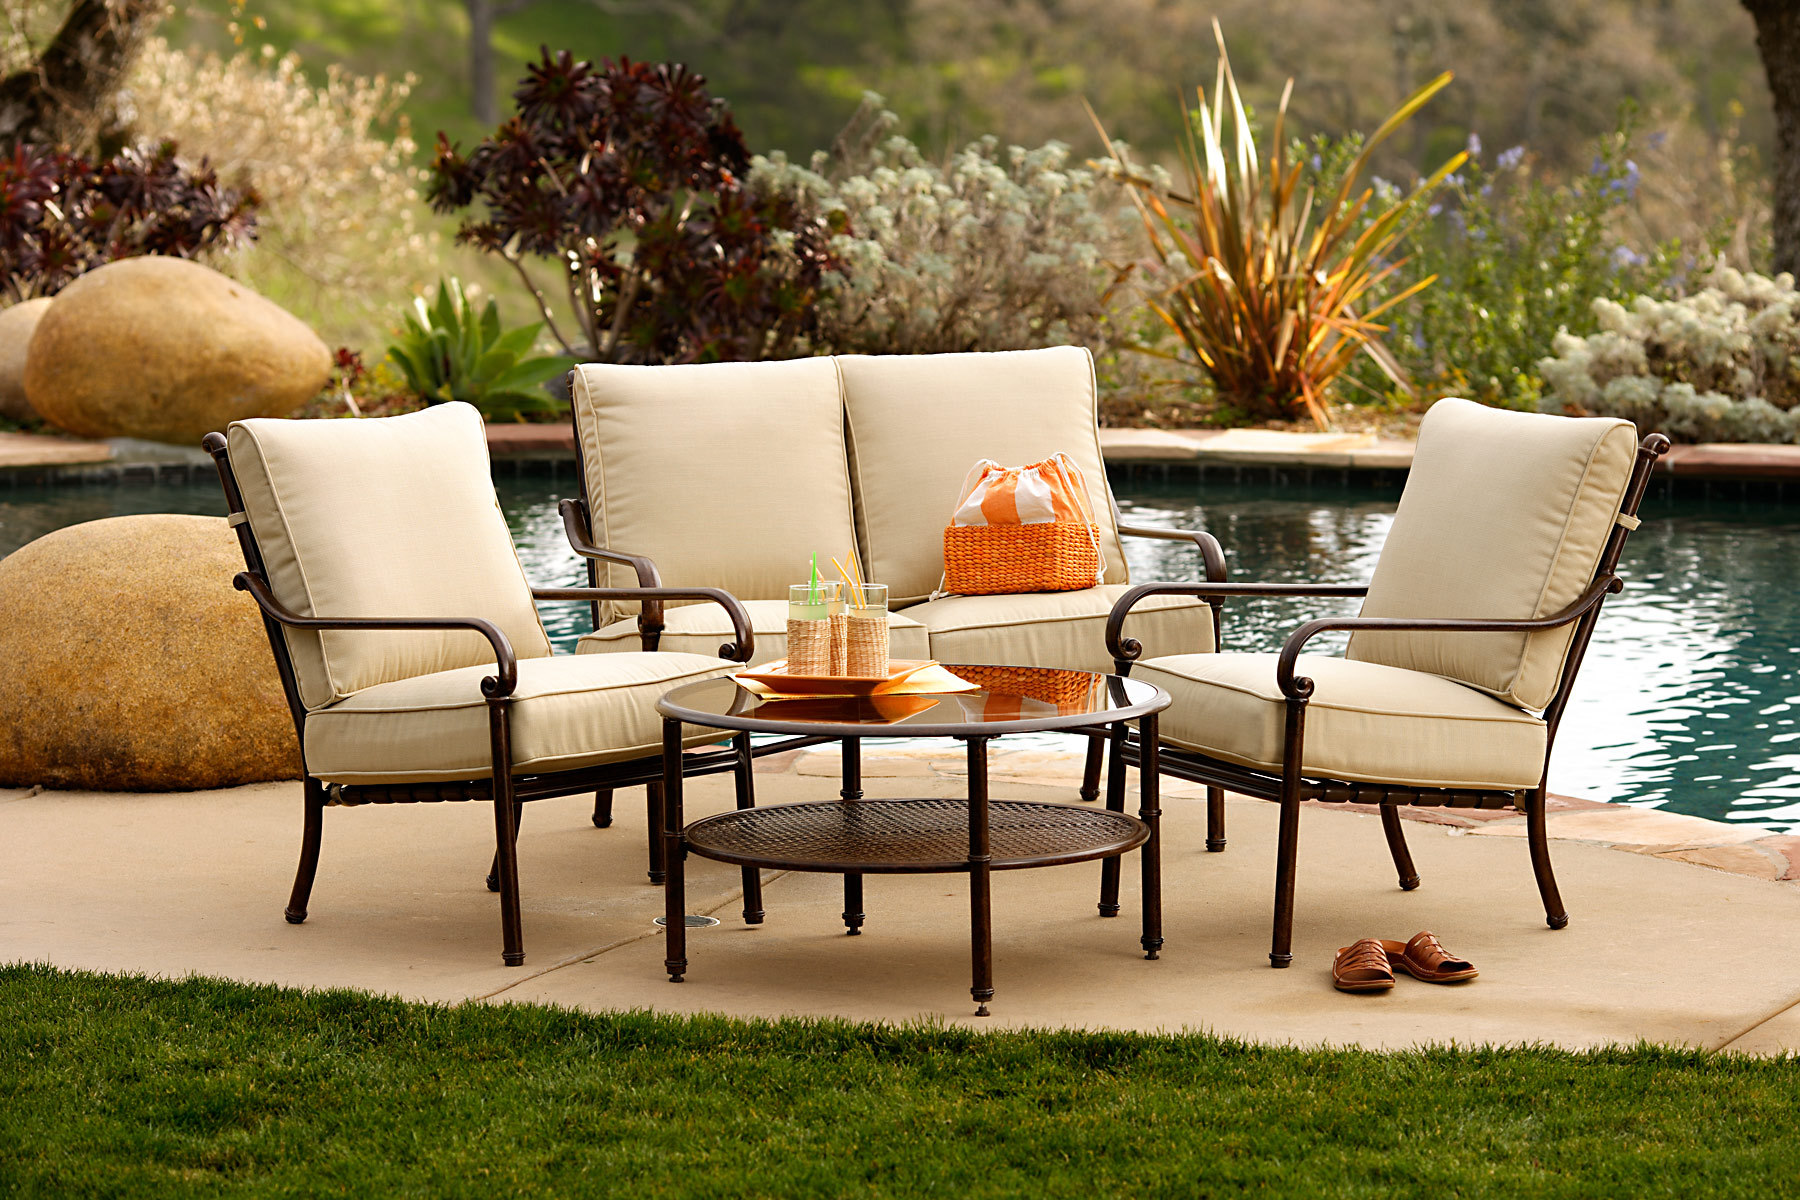 Small patio furniture eva furniture for Outdoor patio couch set